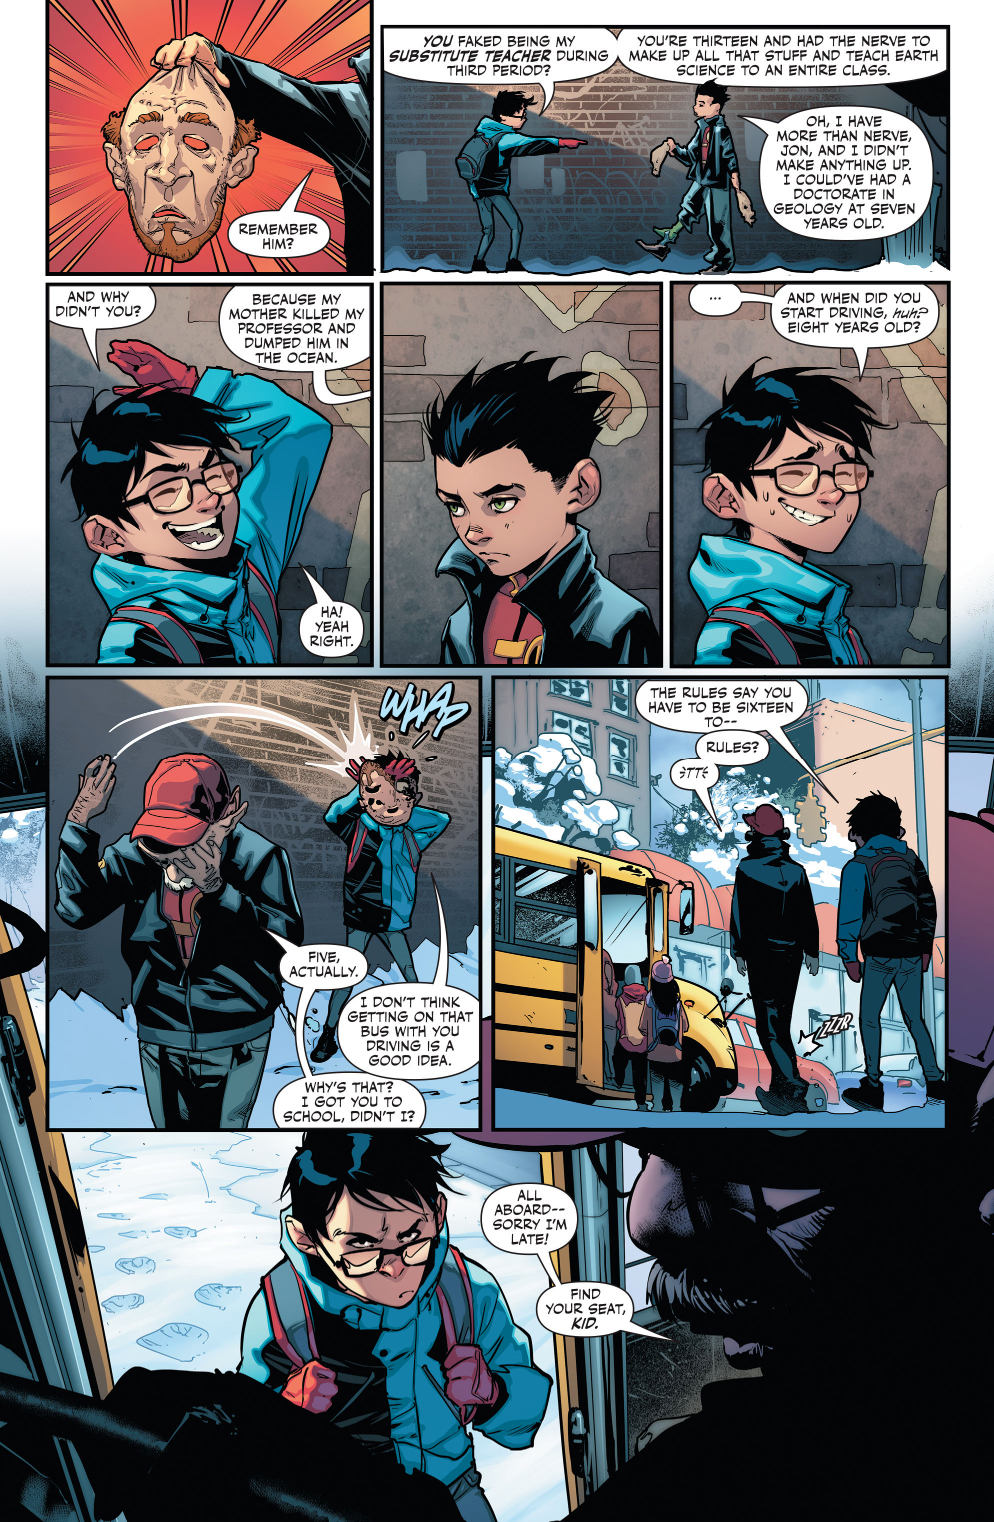 superboy-and-robin-in-a-snow-ball-fight